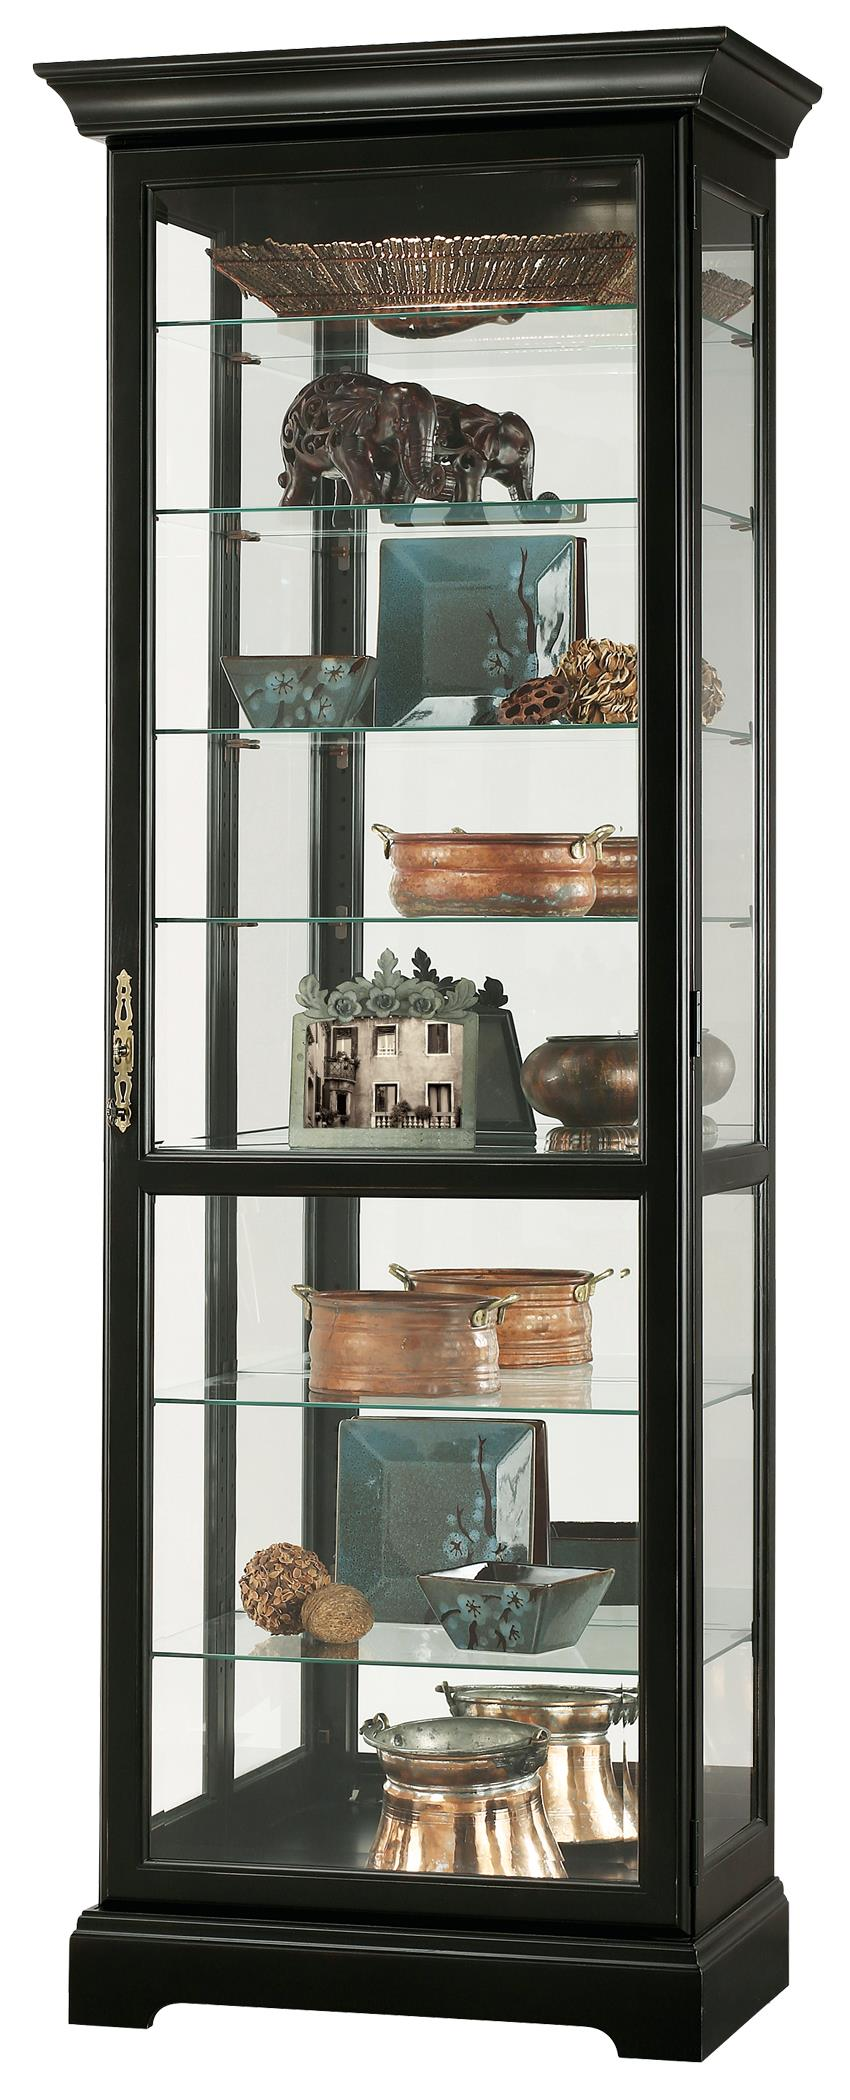 Howard Miller Cabinets Chesterfield III Curio Cabinet - Item Number: 680-287